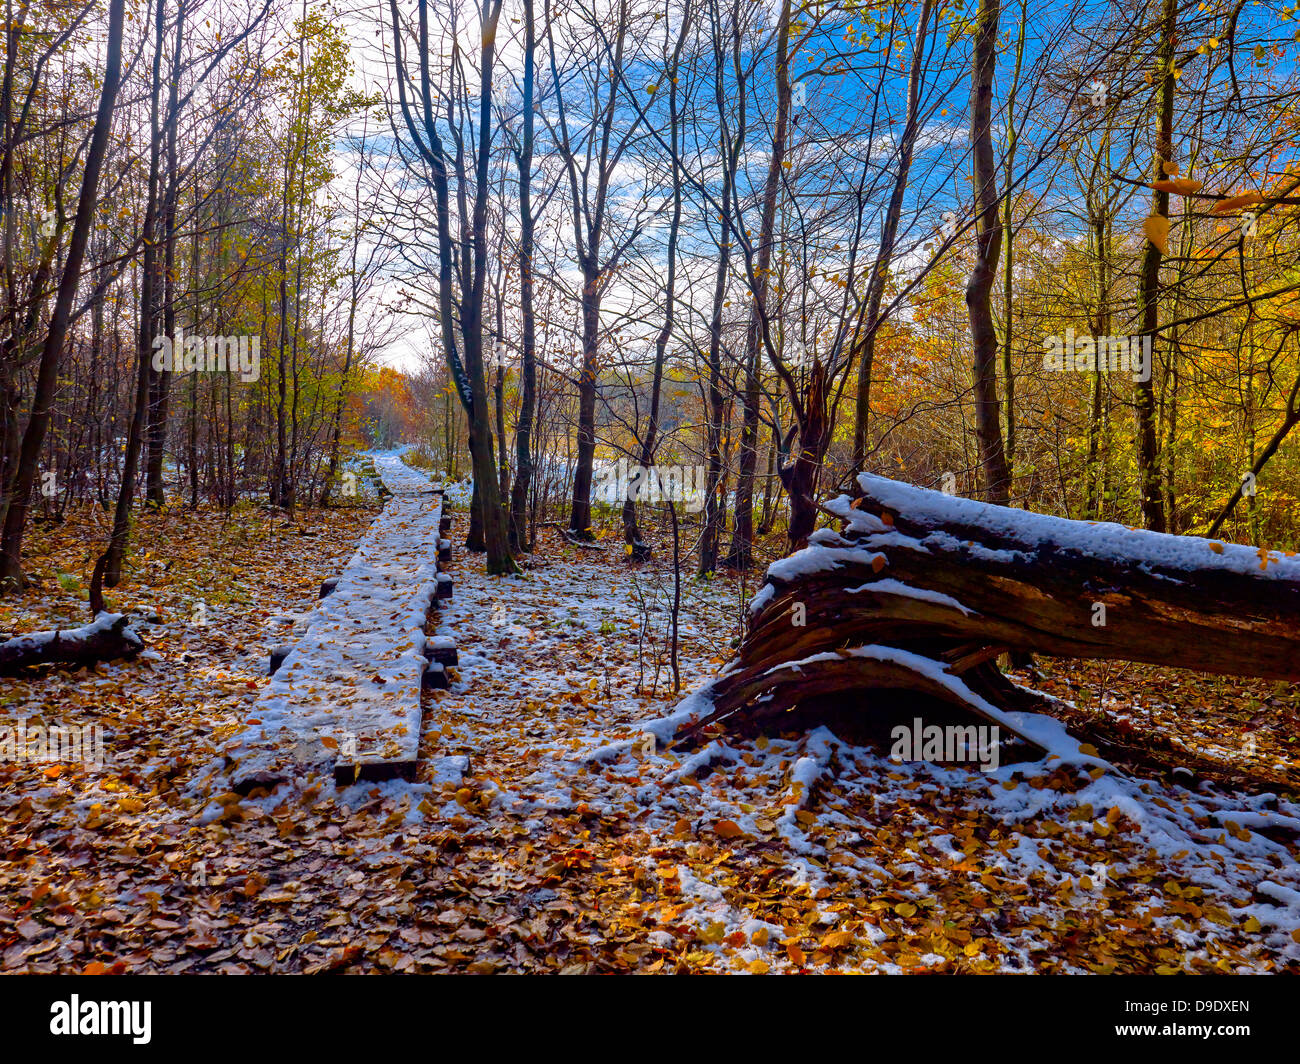 Exit from the Gotterschen undergrowth in Hainich National Park, Thuringia, Germany Stock Photo